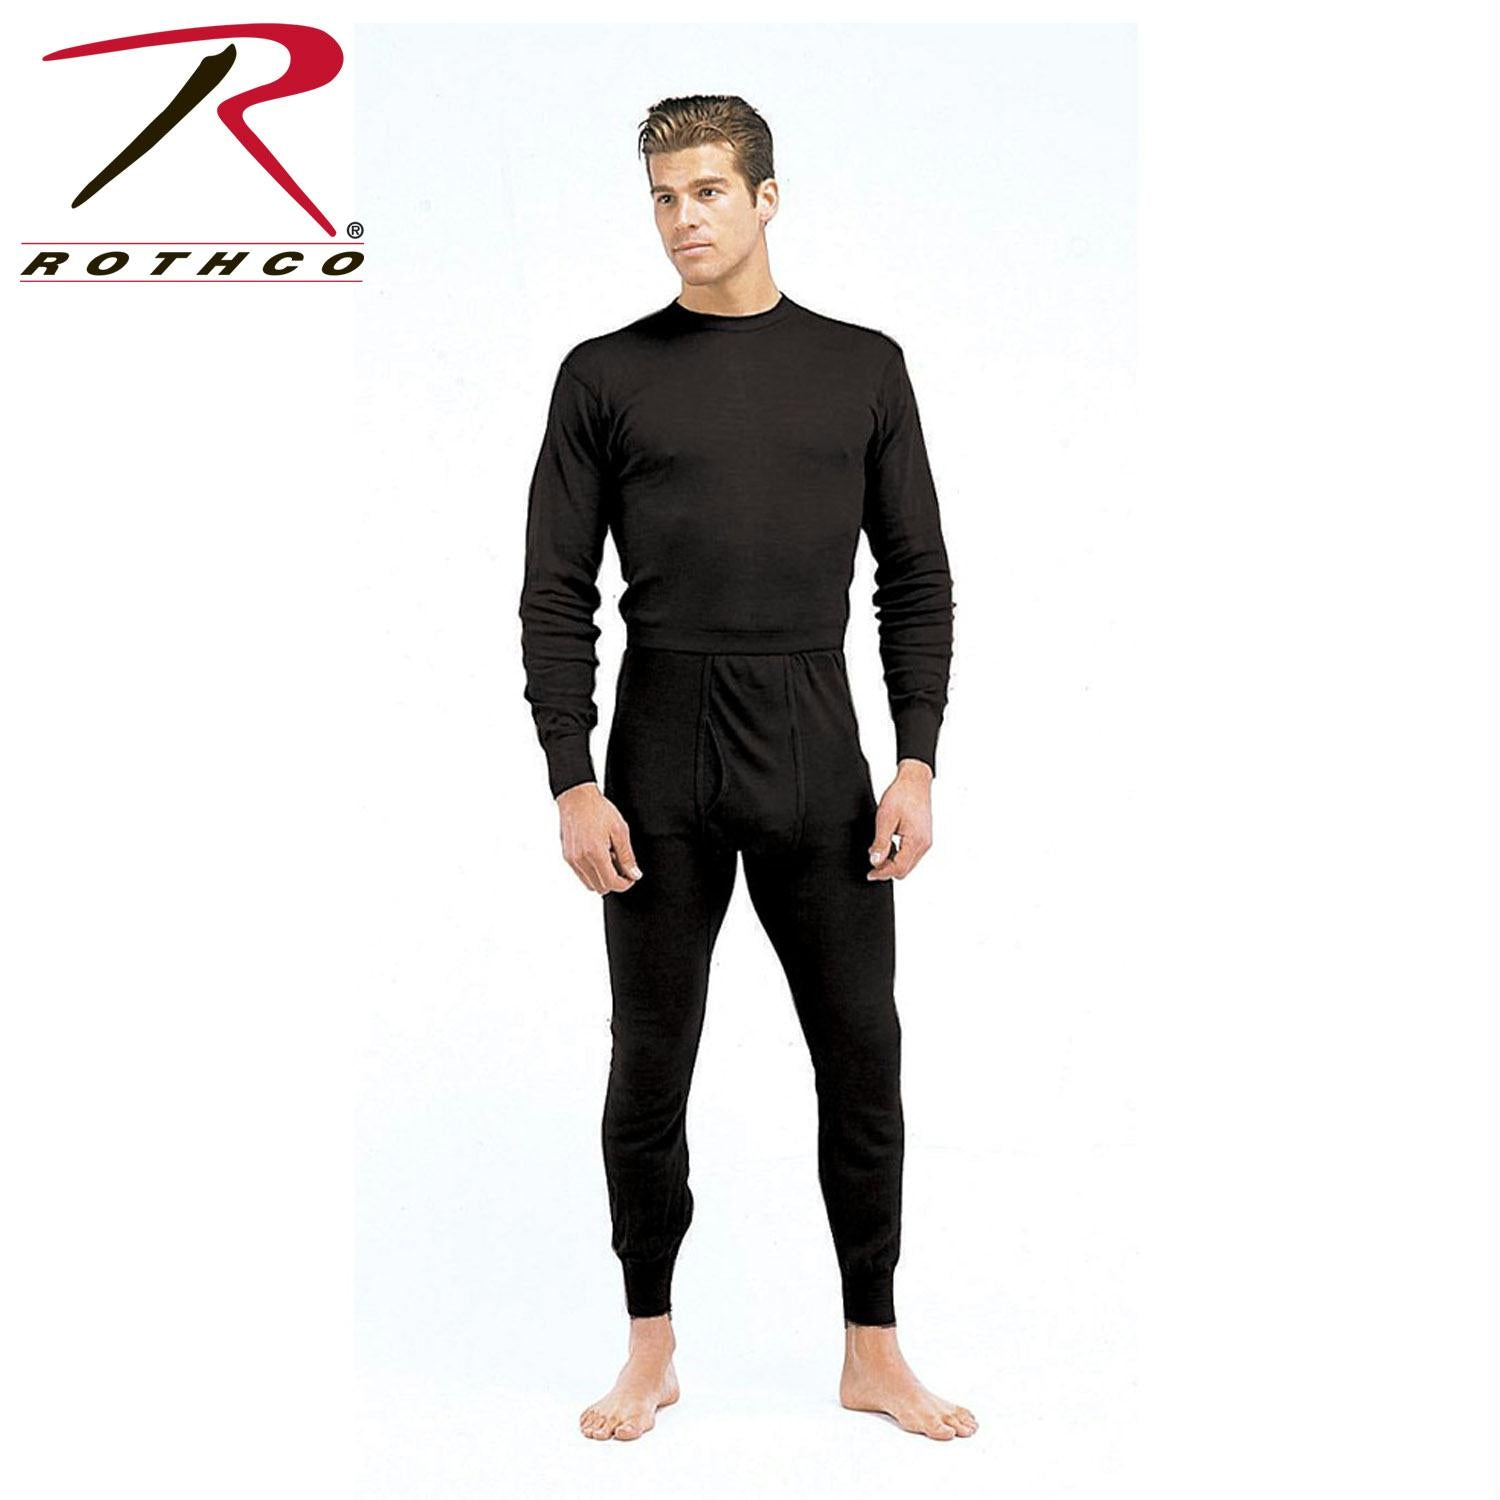 Rothco Single Layer Poly Underwear Tops